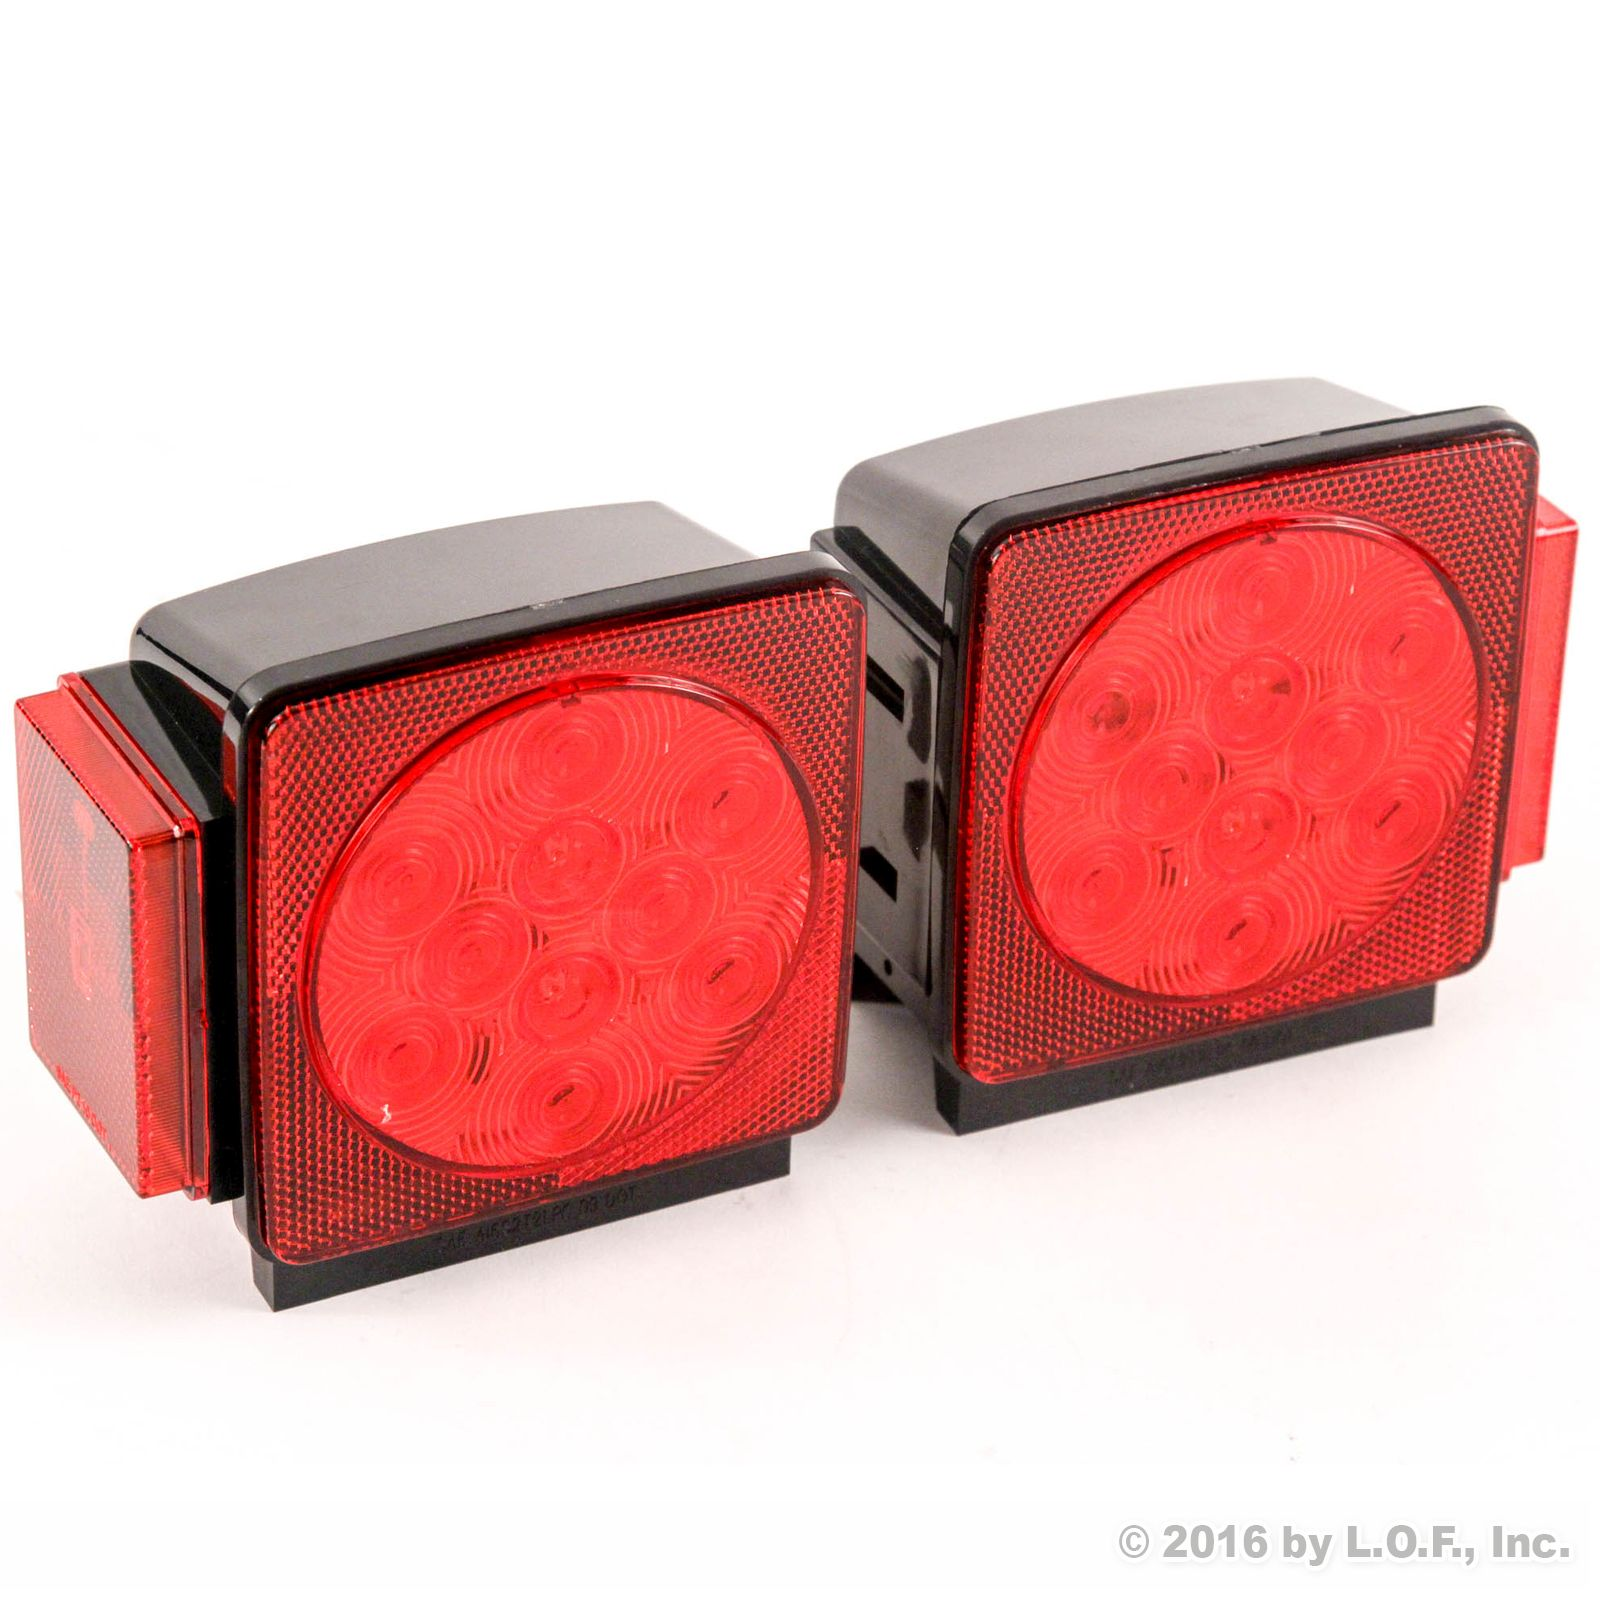 LED Square Red Trailer Turn/Signal/Stop 2 Light DOT compliant Set L/R Submersible Under 80